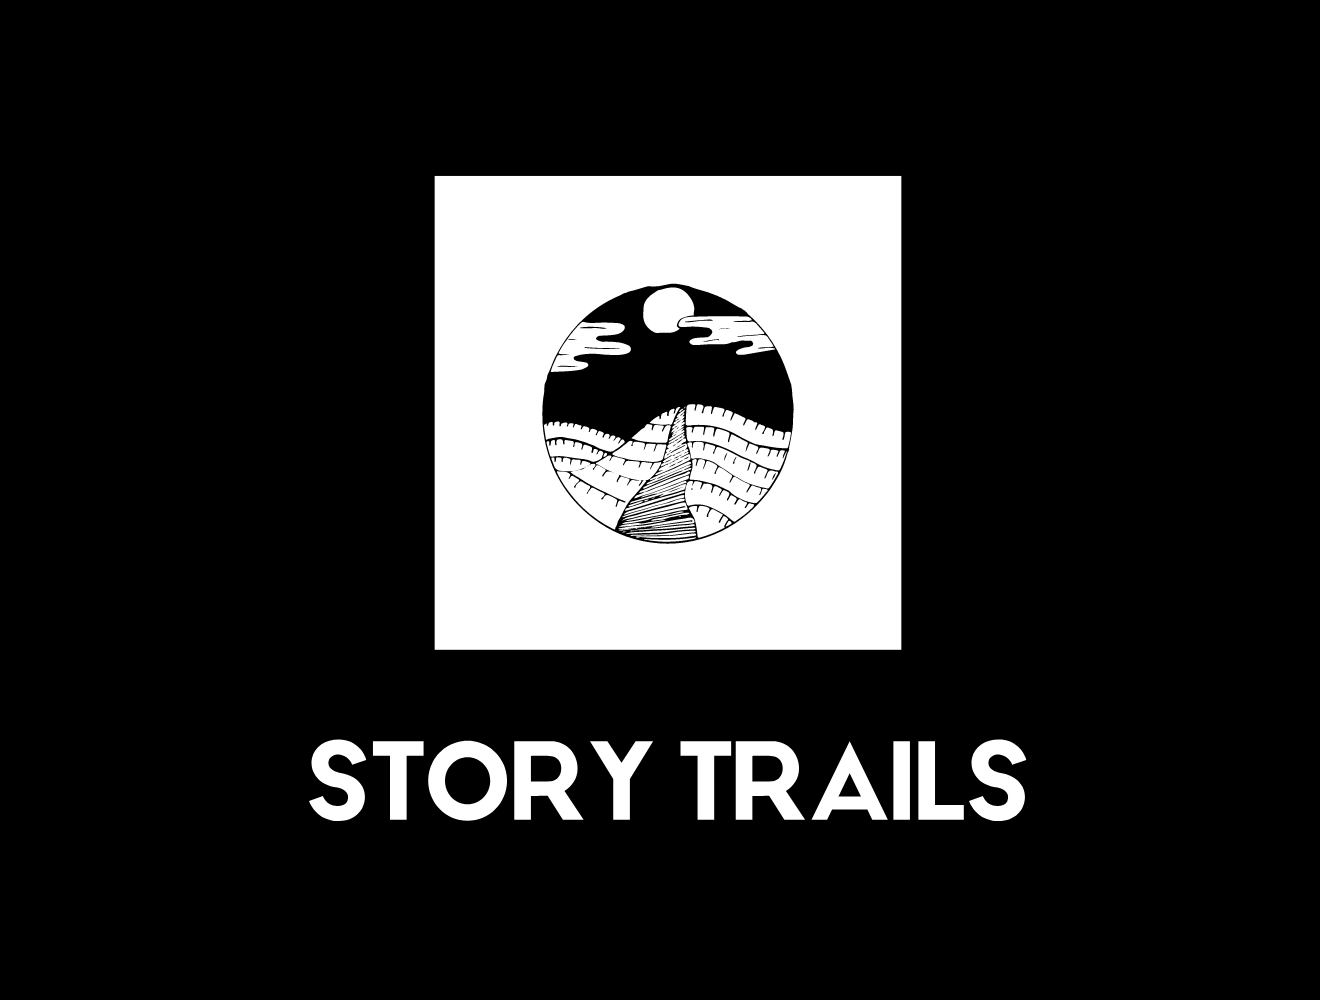 The Story Trails logo